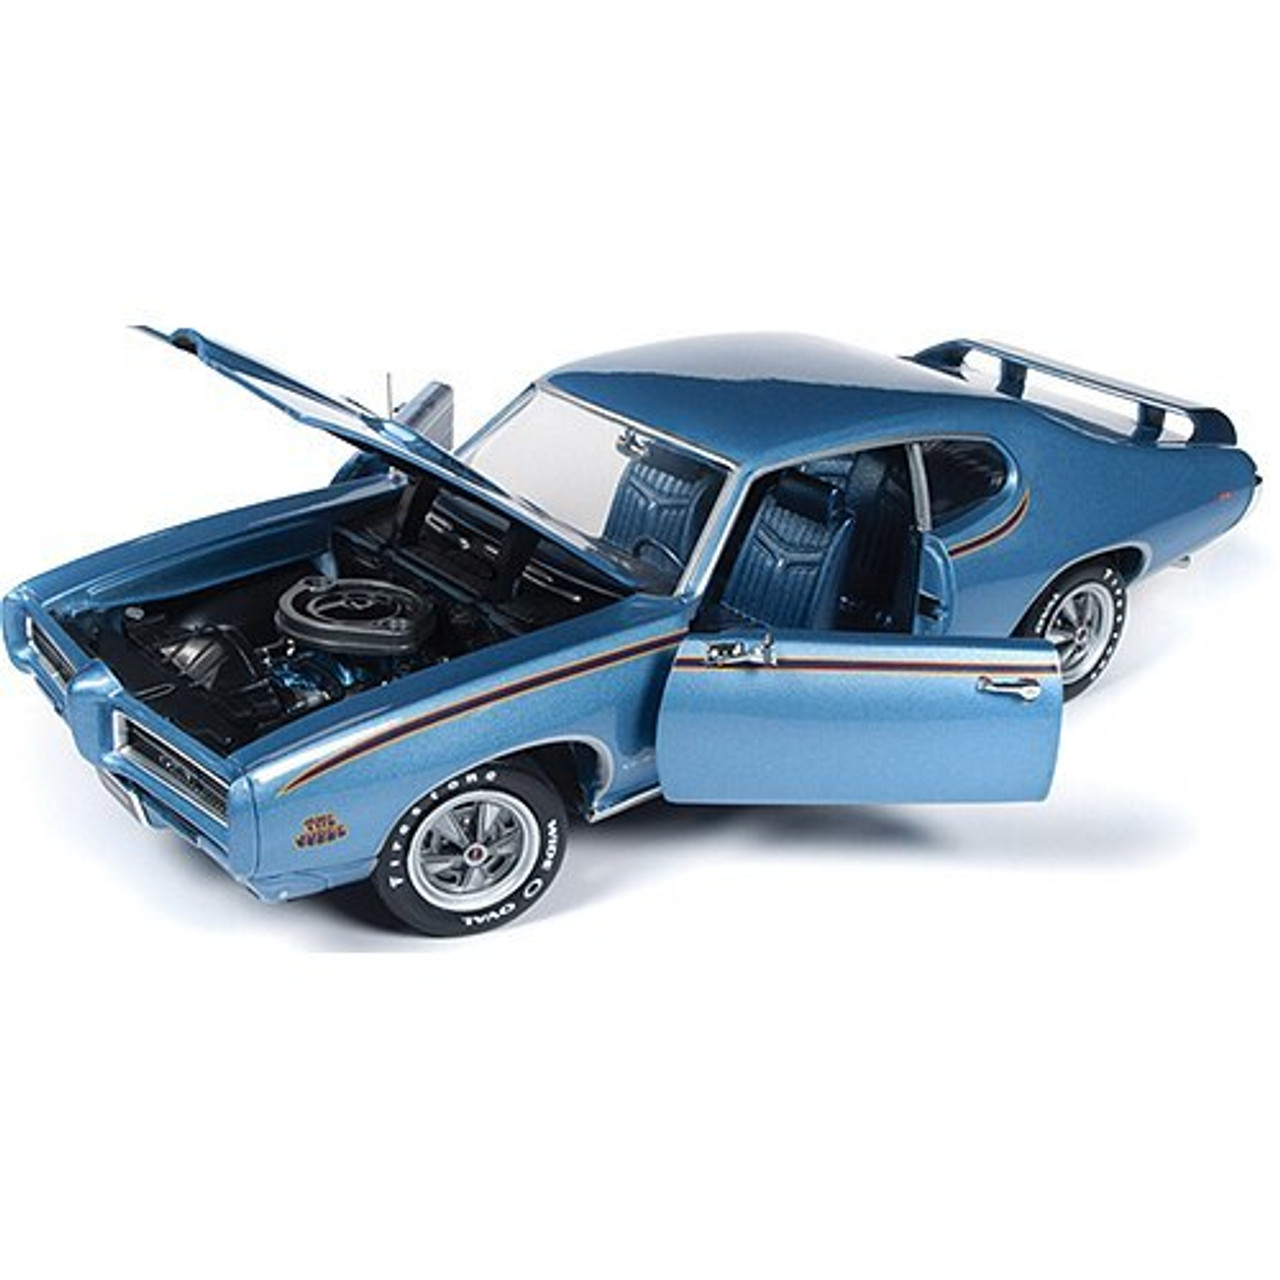 1969 Pontiac Gto Judge Mcacn 1 18 Scale Diecast Model By American Muscle Collectable Diecast